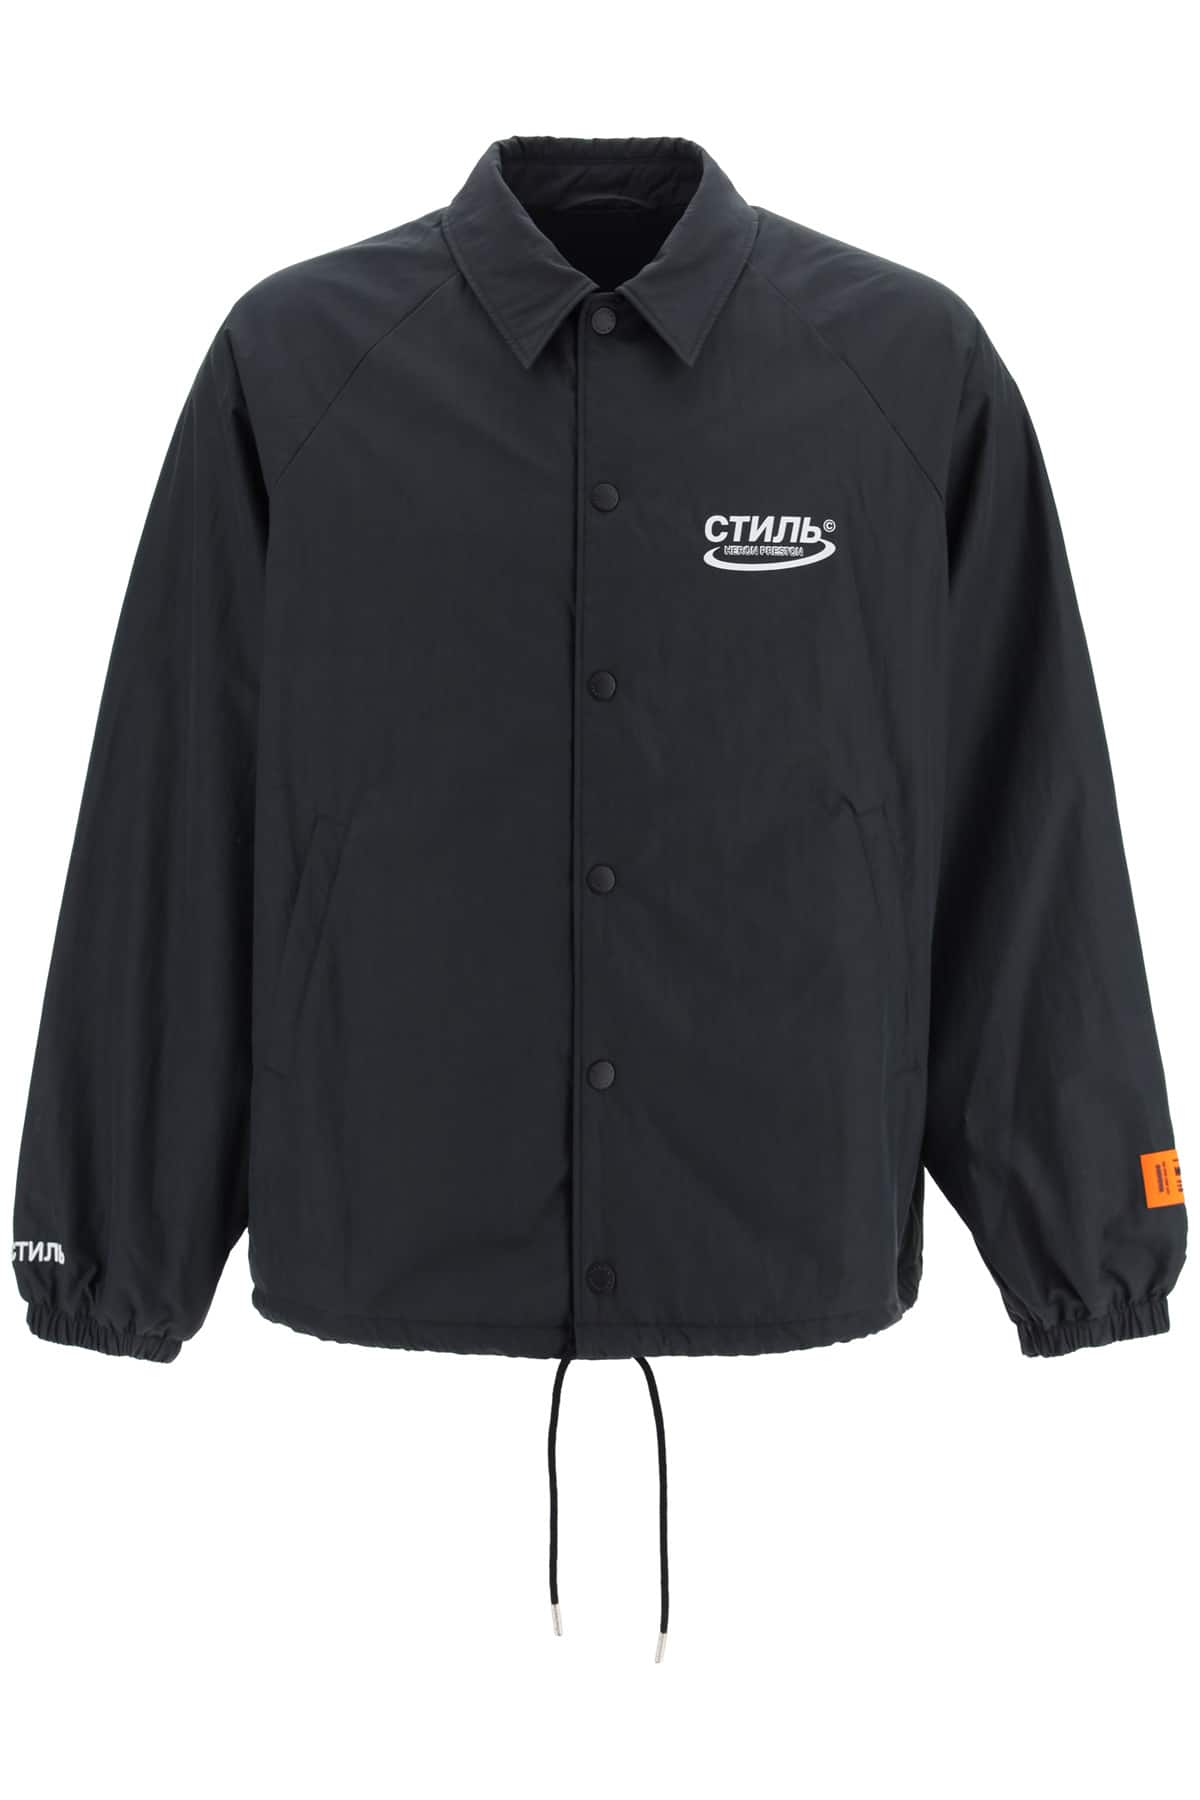 HERON PRESTON CTNMB COACH JACKET S Black Technical